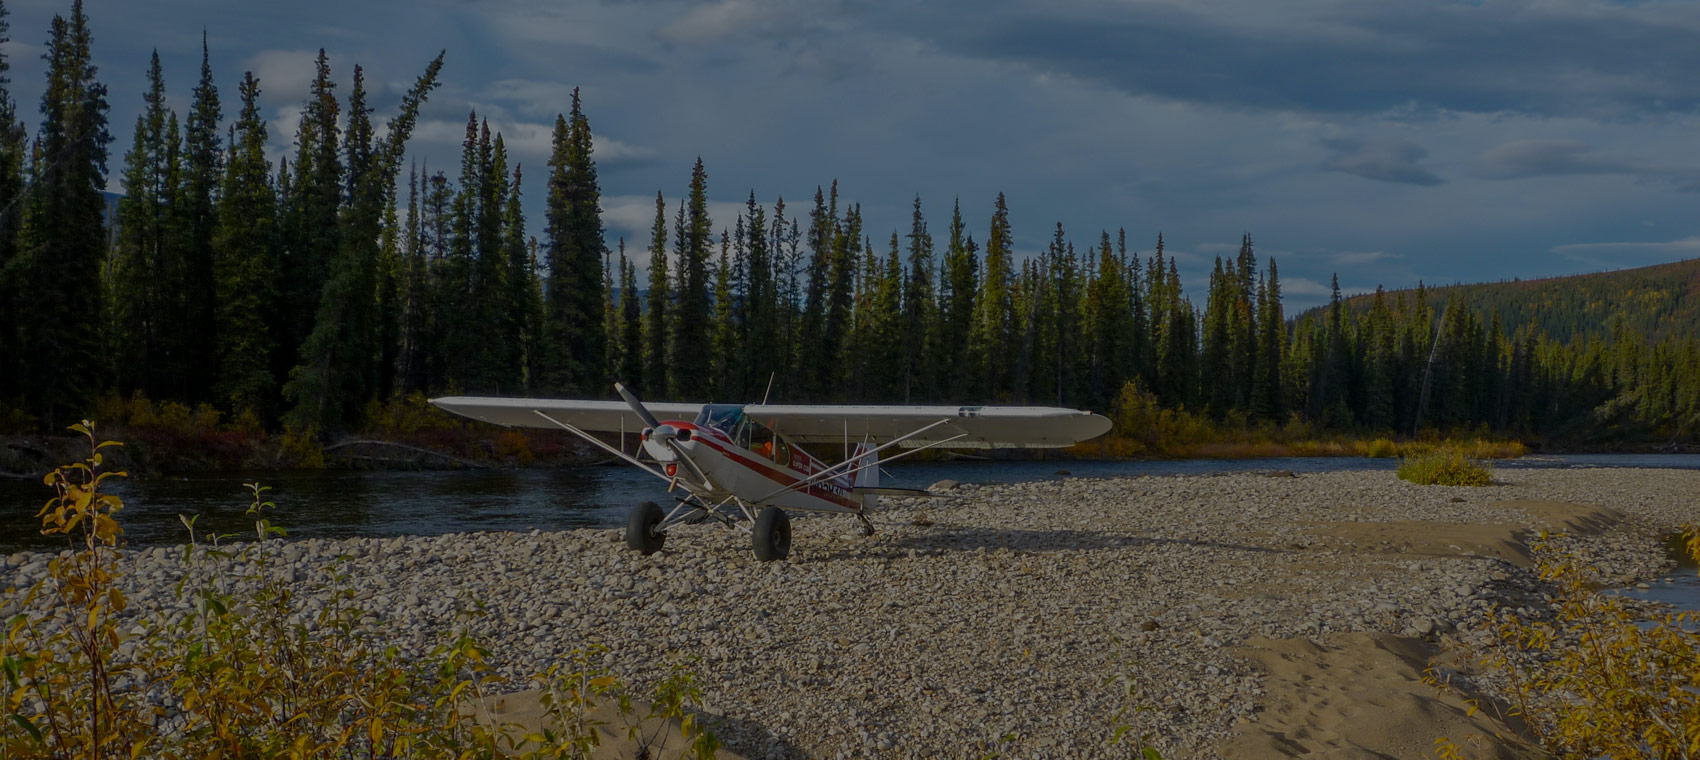 Remote alaska hunts plane